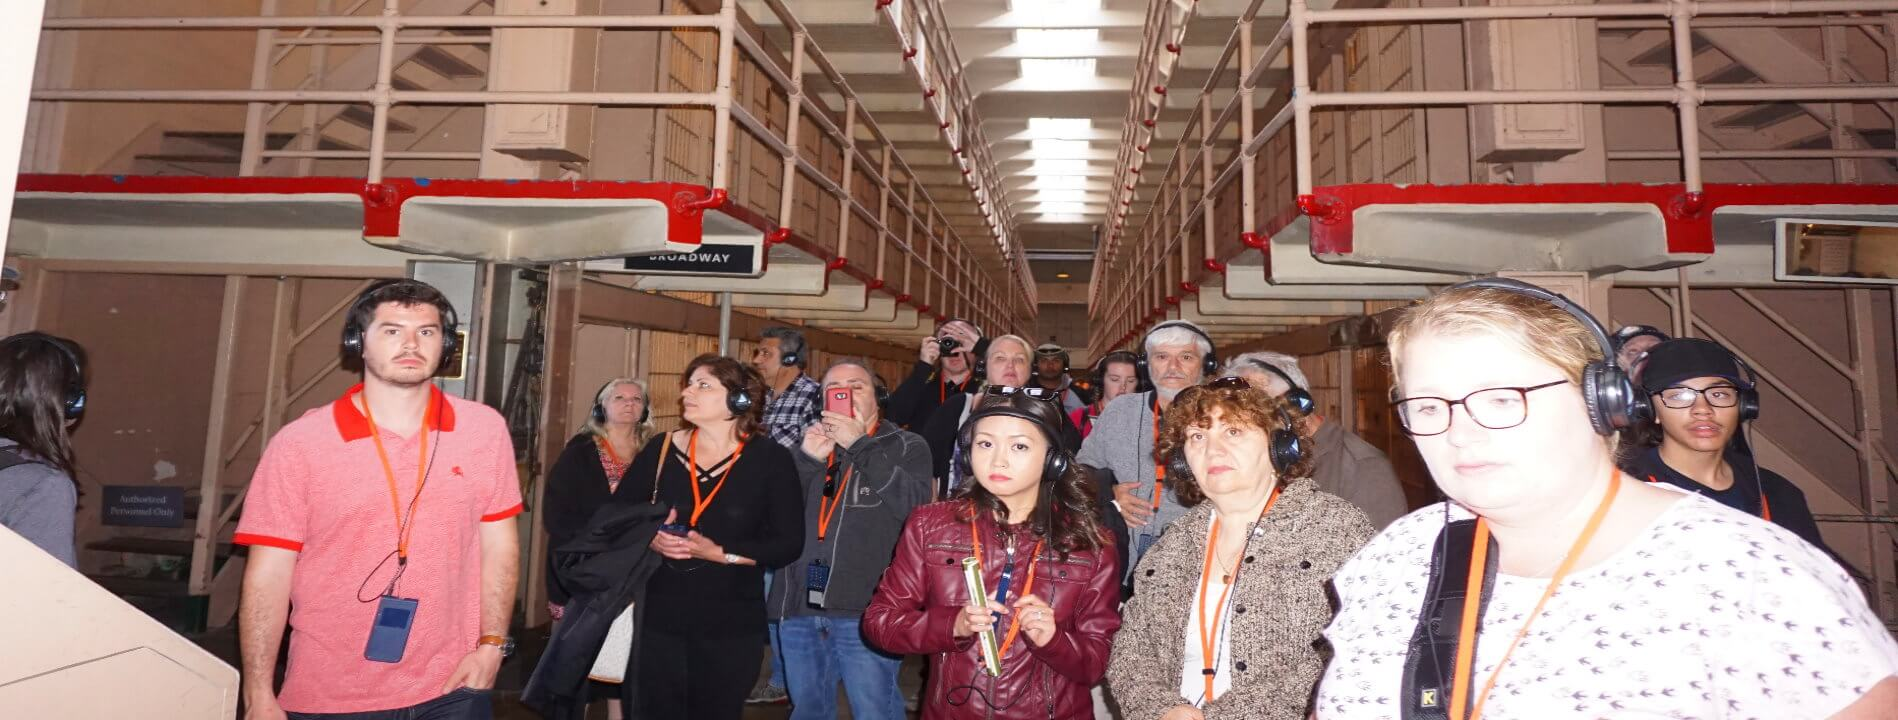 Alcatraz-Island-Prison-Cell-Walking-Audio-Guided-Tour-cells-cell-blocs-SanFrancisco